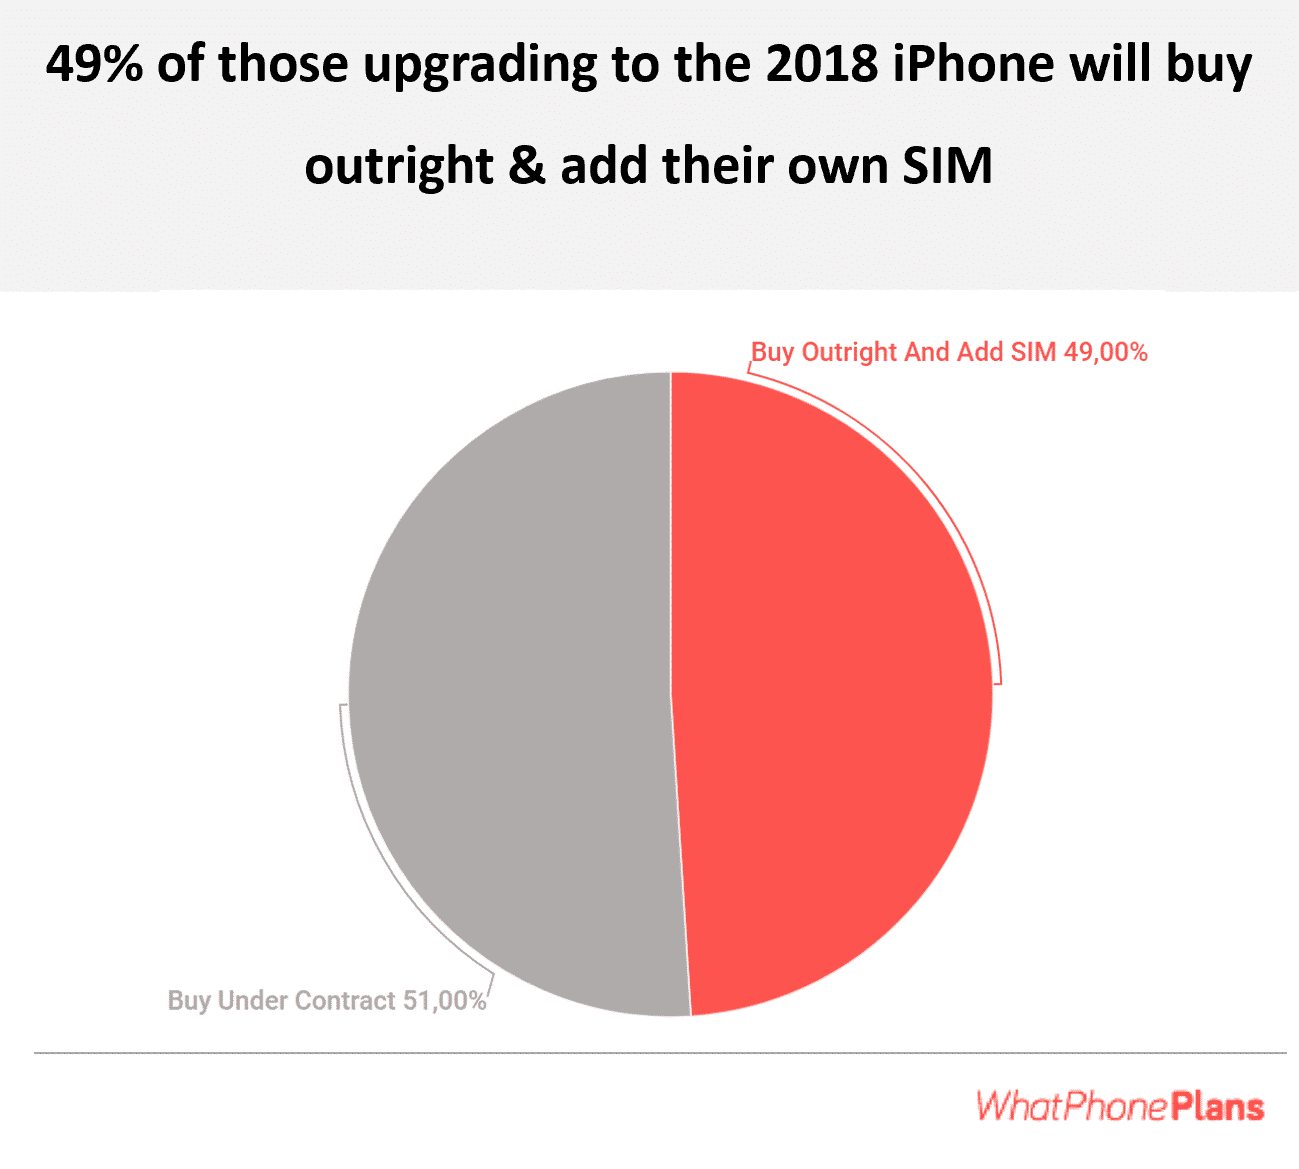 49% of those upgrading their iPhone to the XS / XS Max or XR intent to buy the phone themselves and add a SIM.